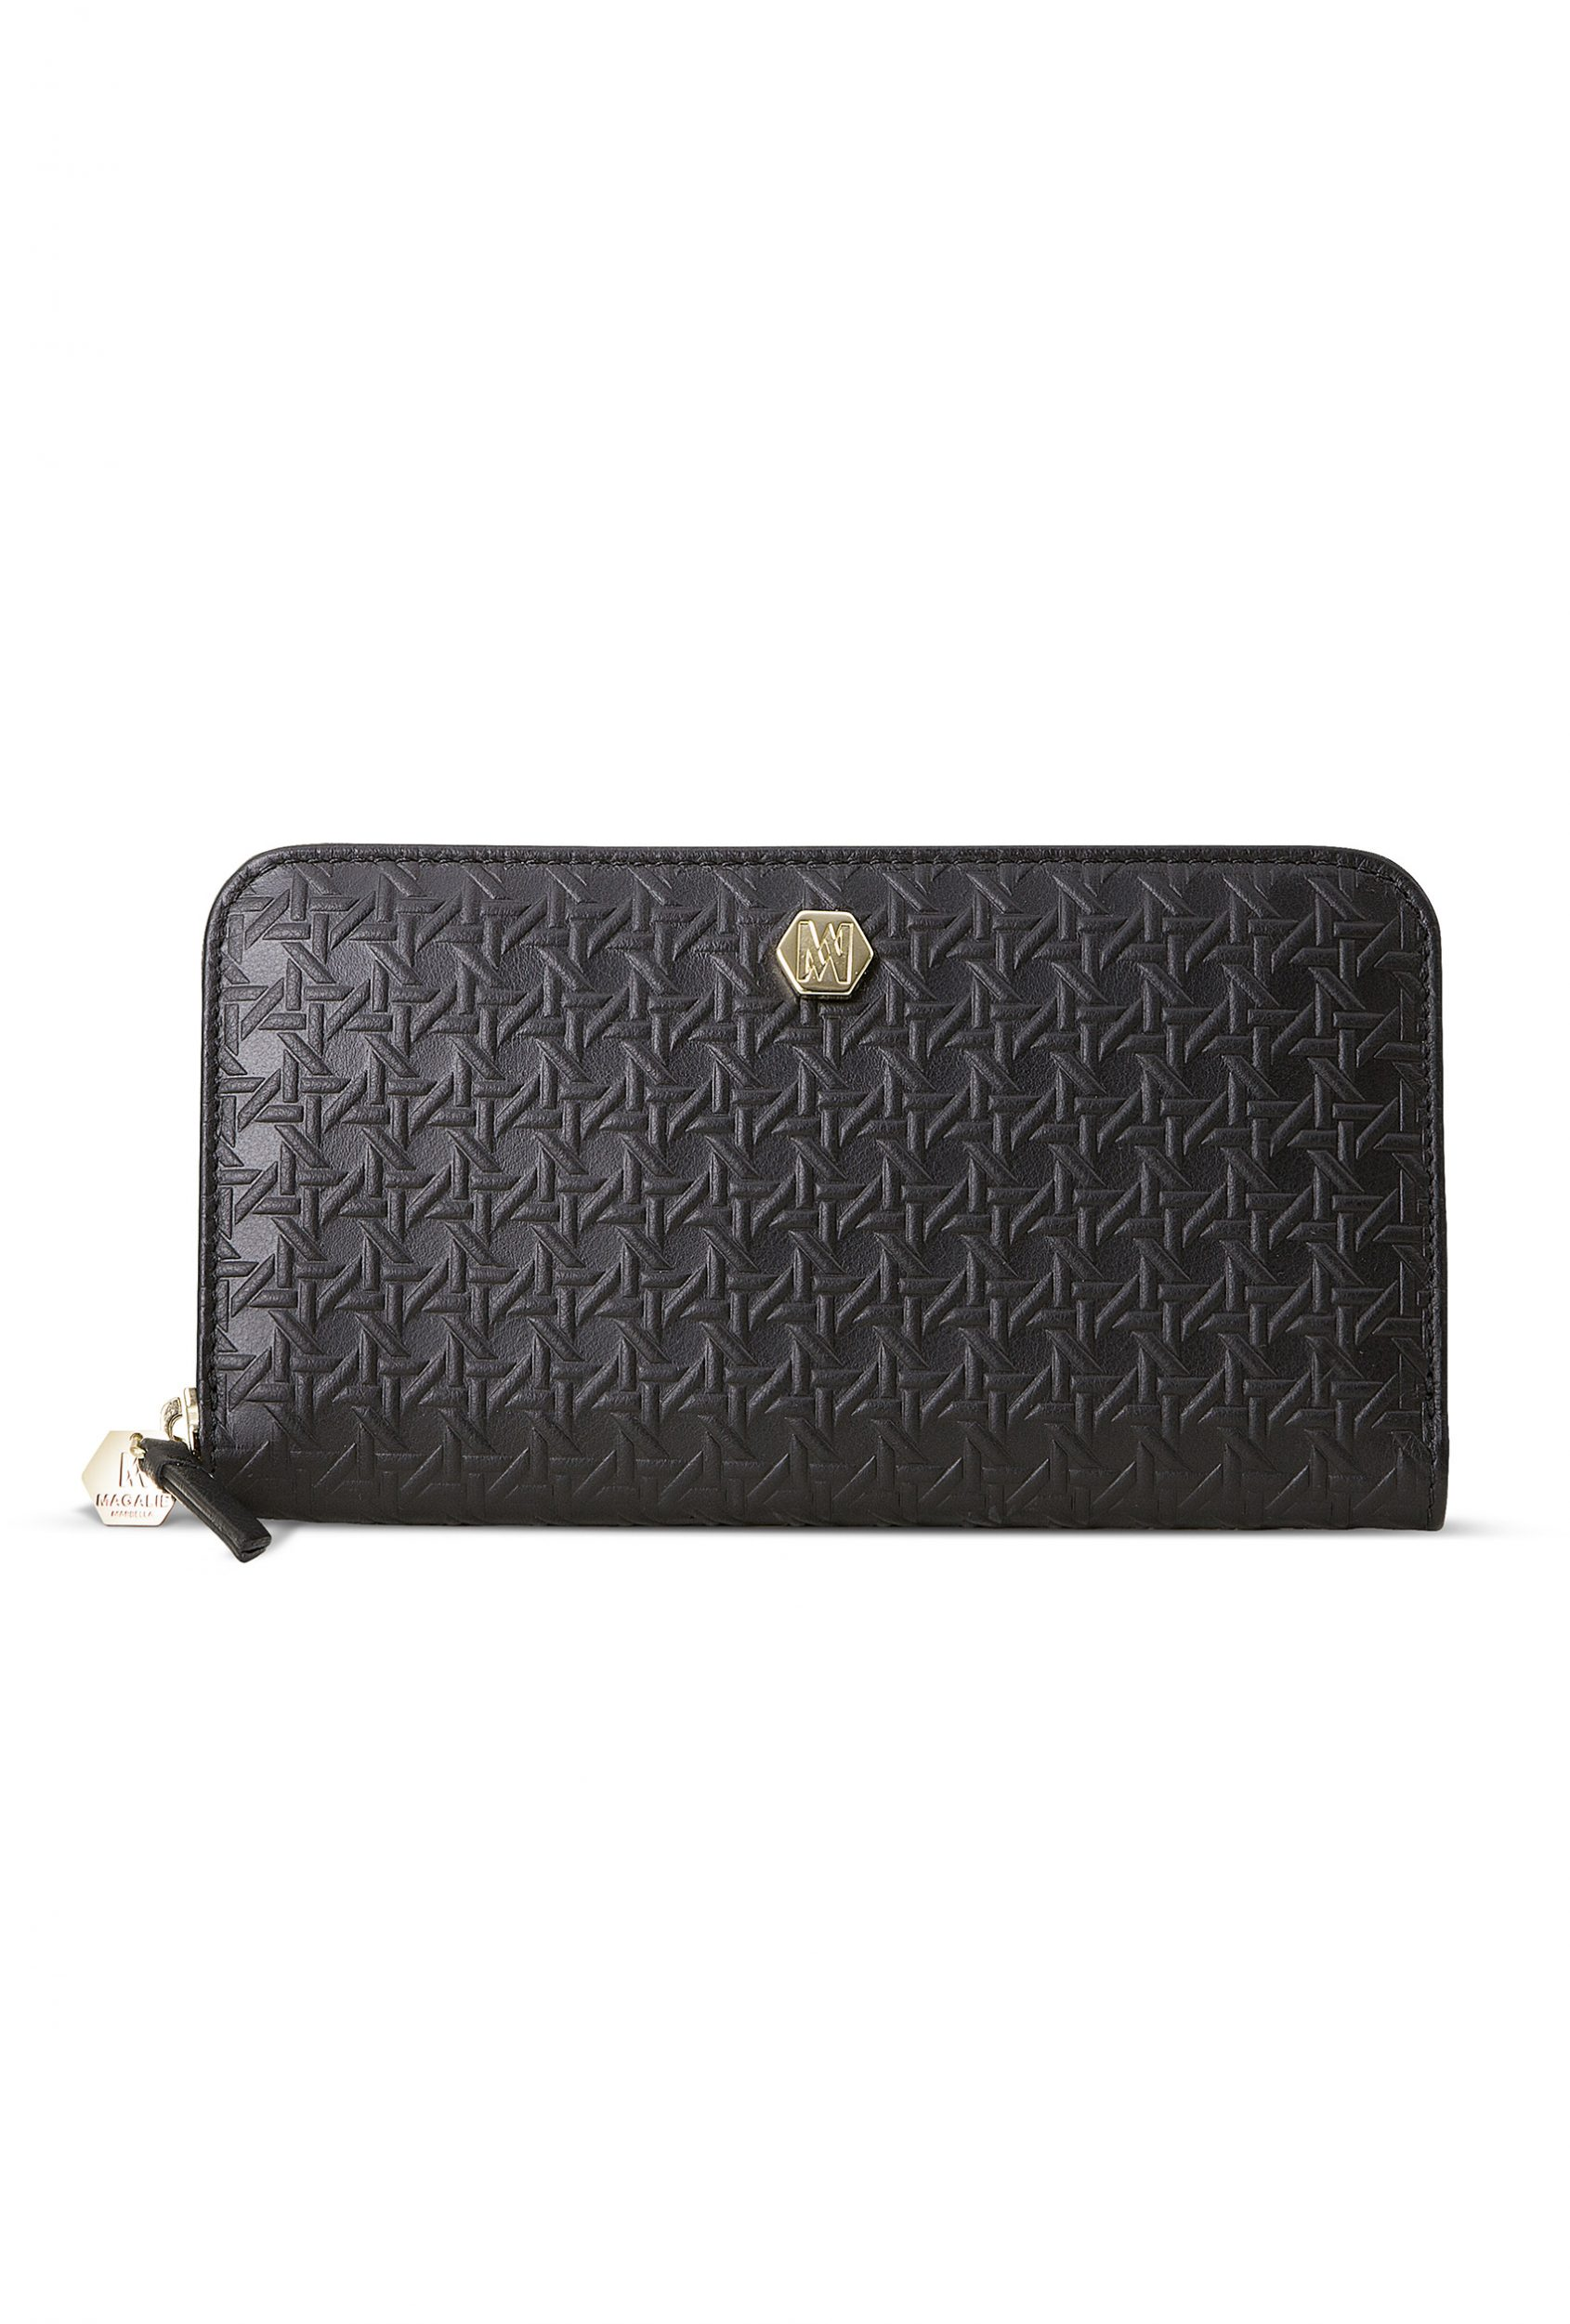 cartera billetera Purity de piel en negro. Magalie